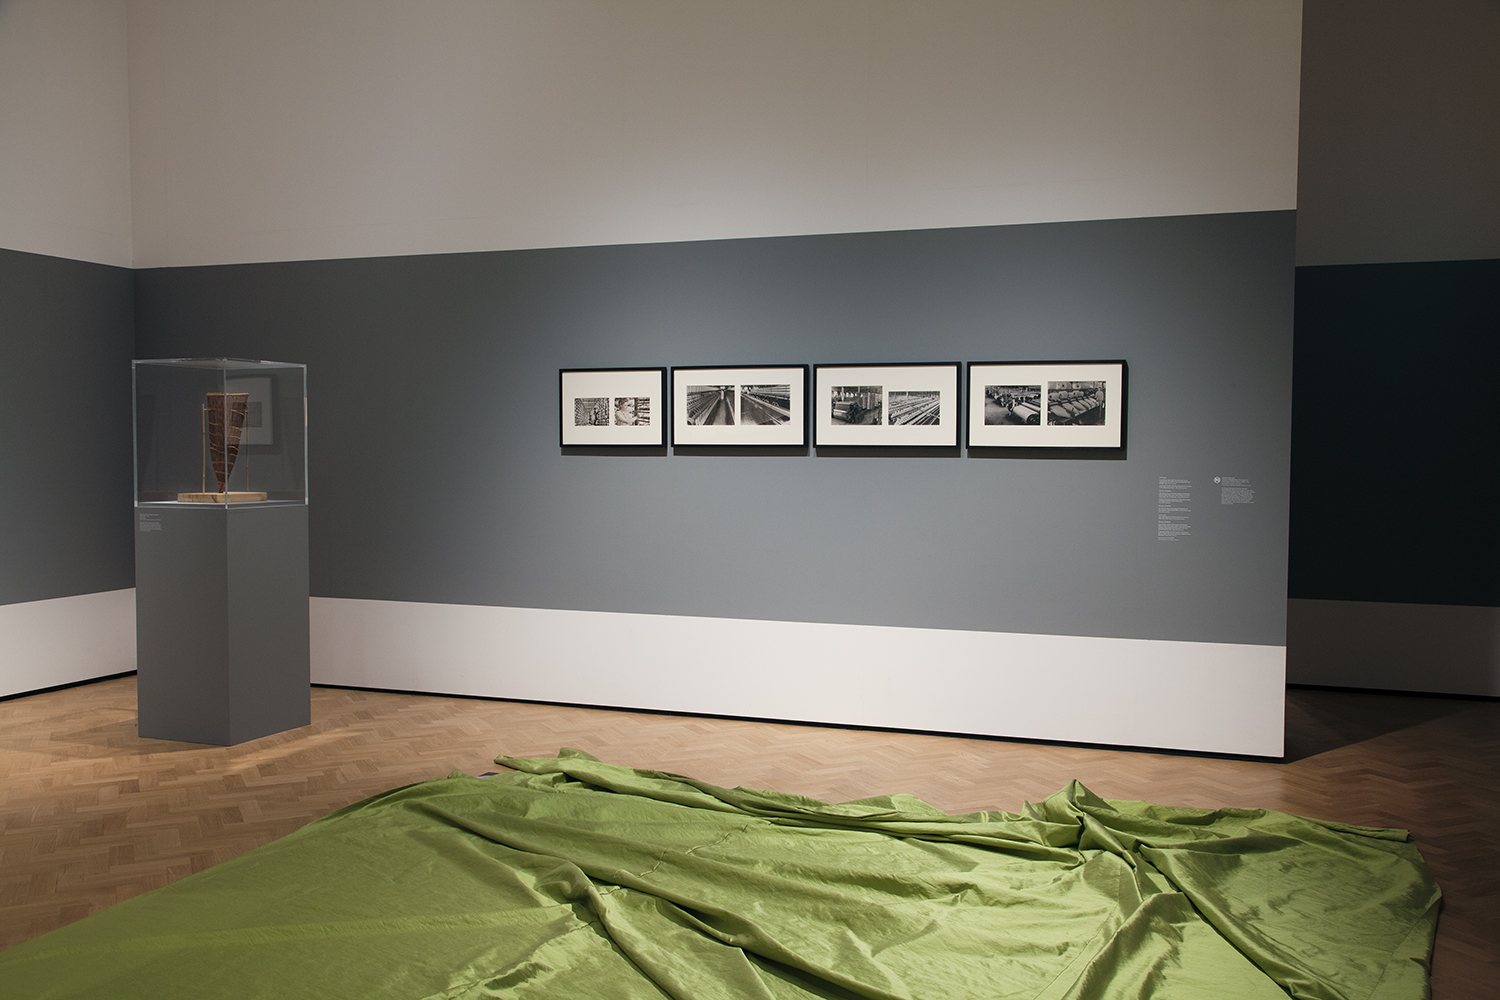 'In A Dream You Saw A Way To Survive...' at Glynn Vivian Art Gallery